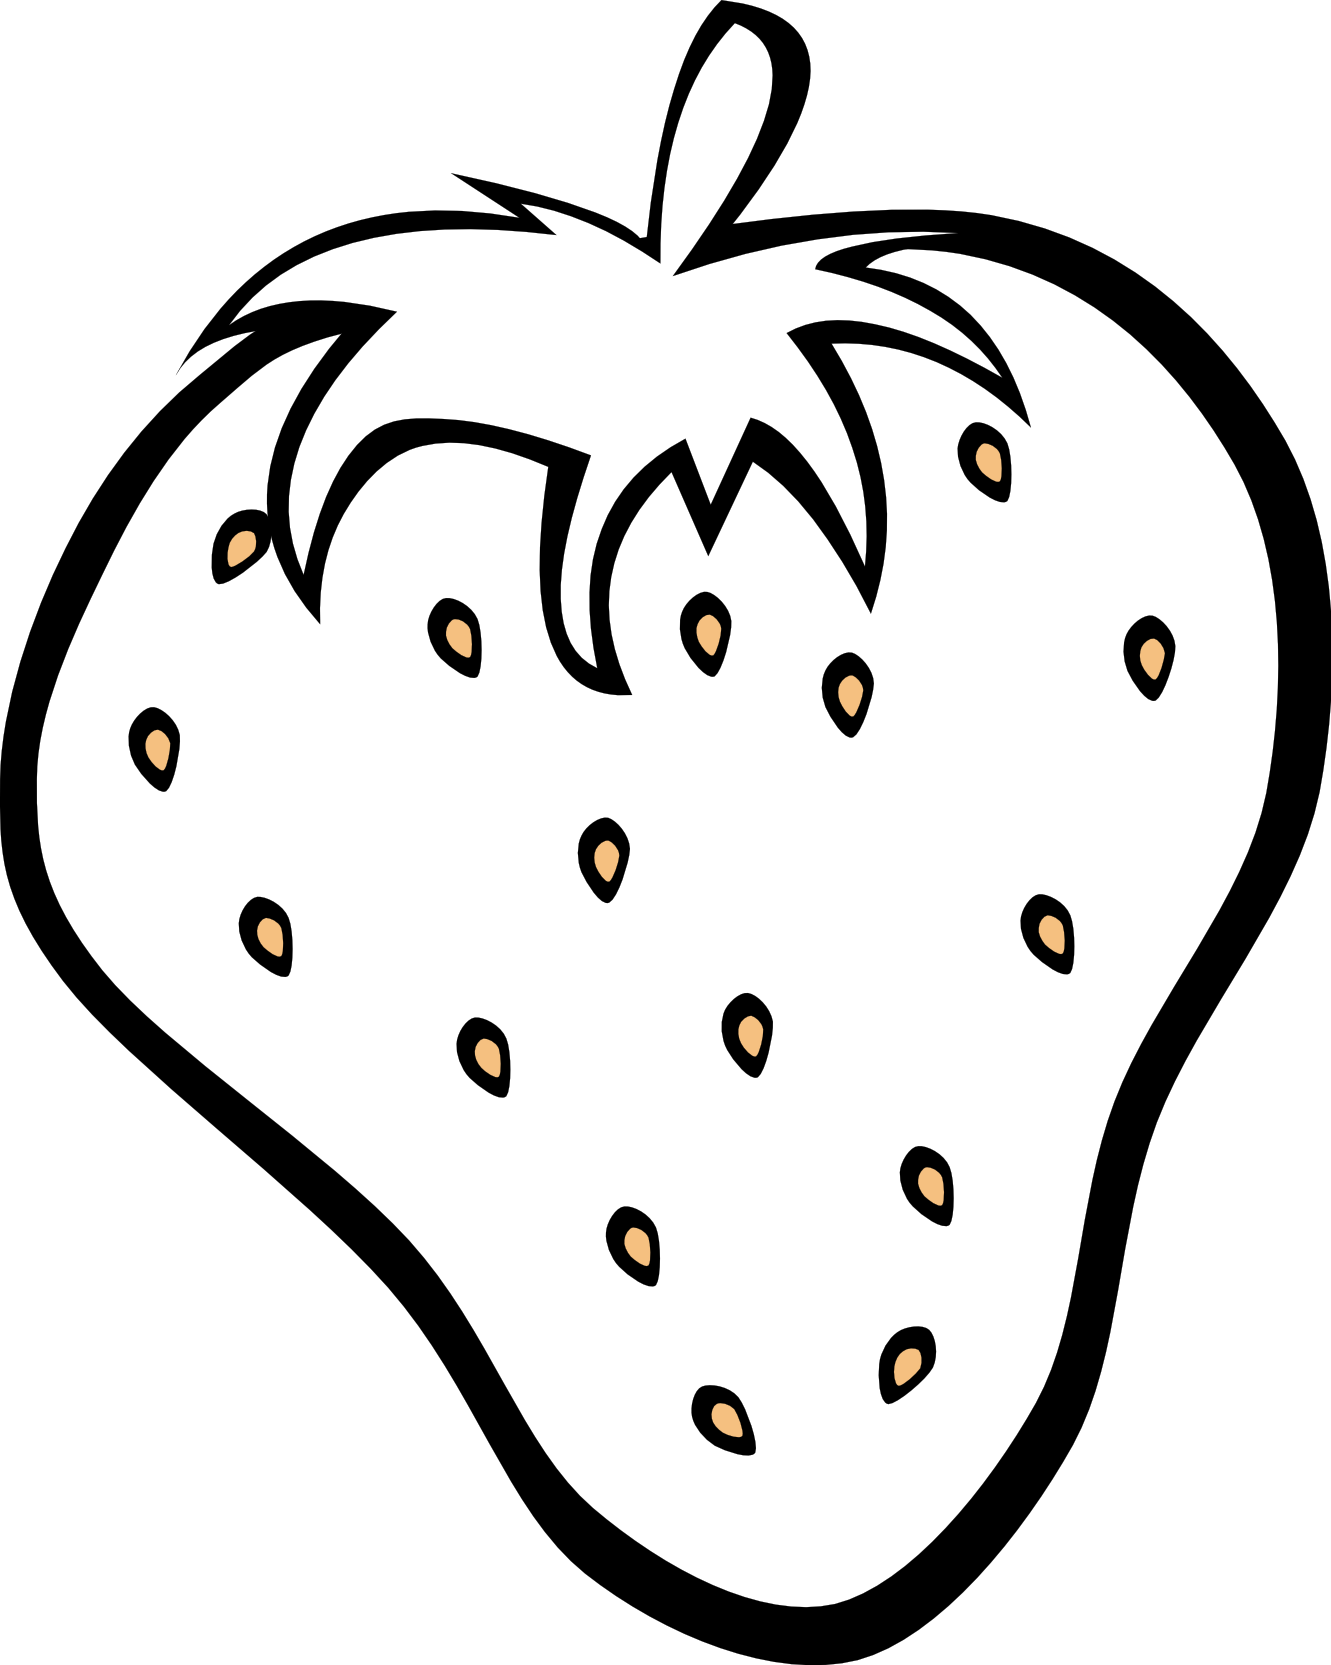 Custard apple clipart black and white banner black and white library 35++ Beauty Clipart Guava Black And banner black and white library